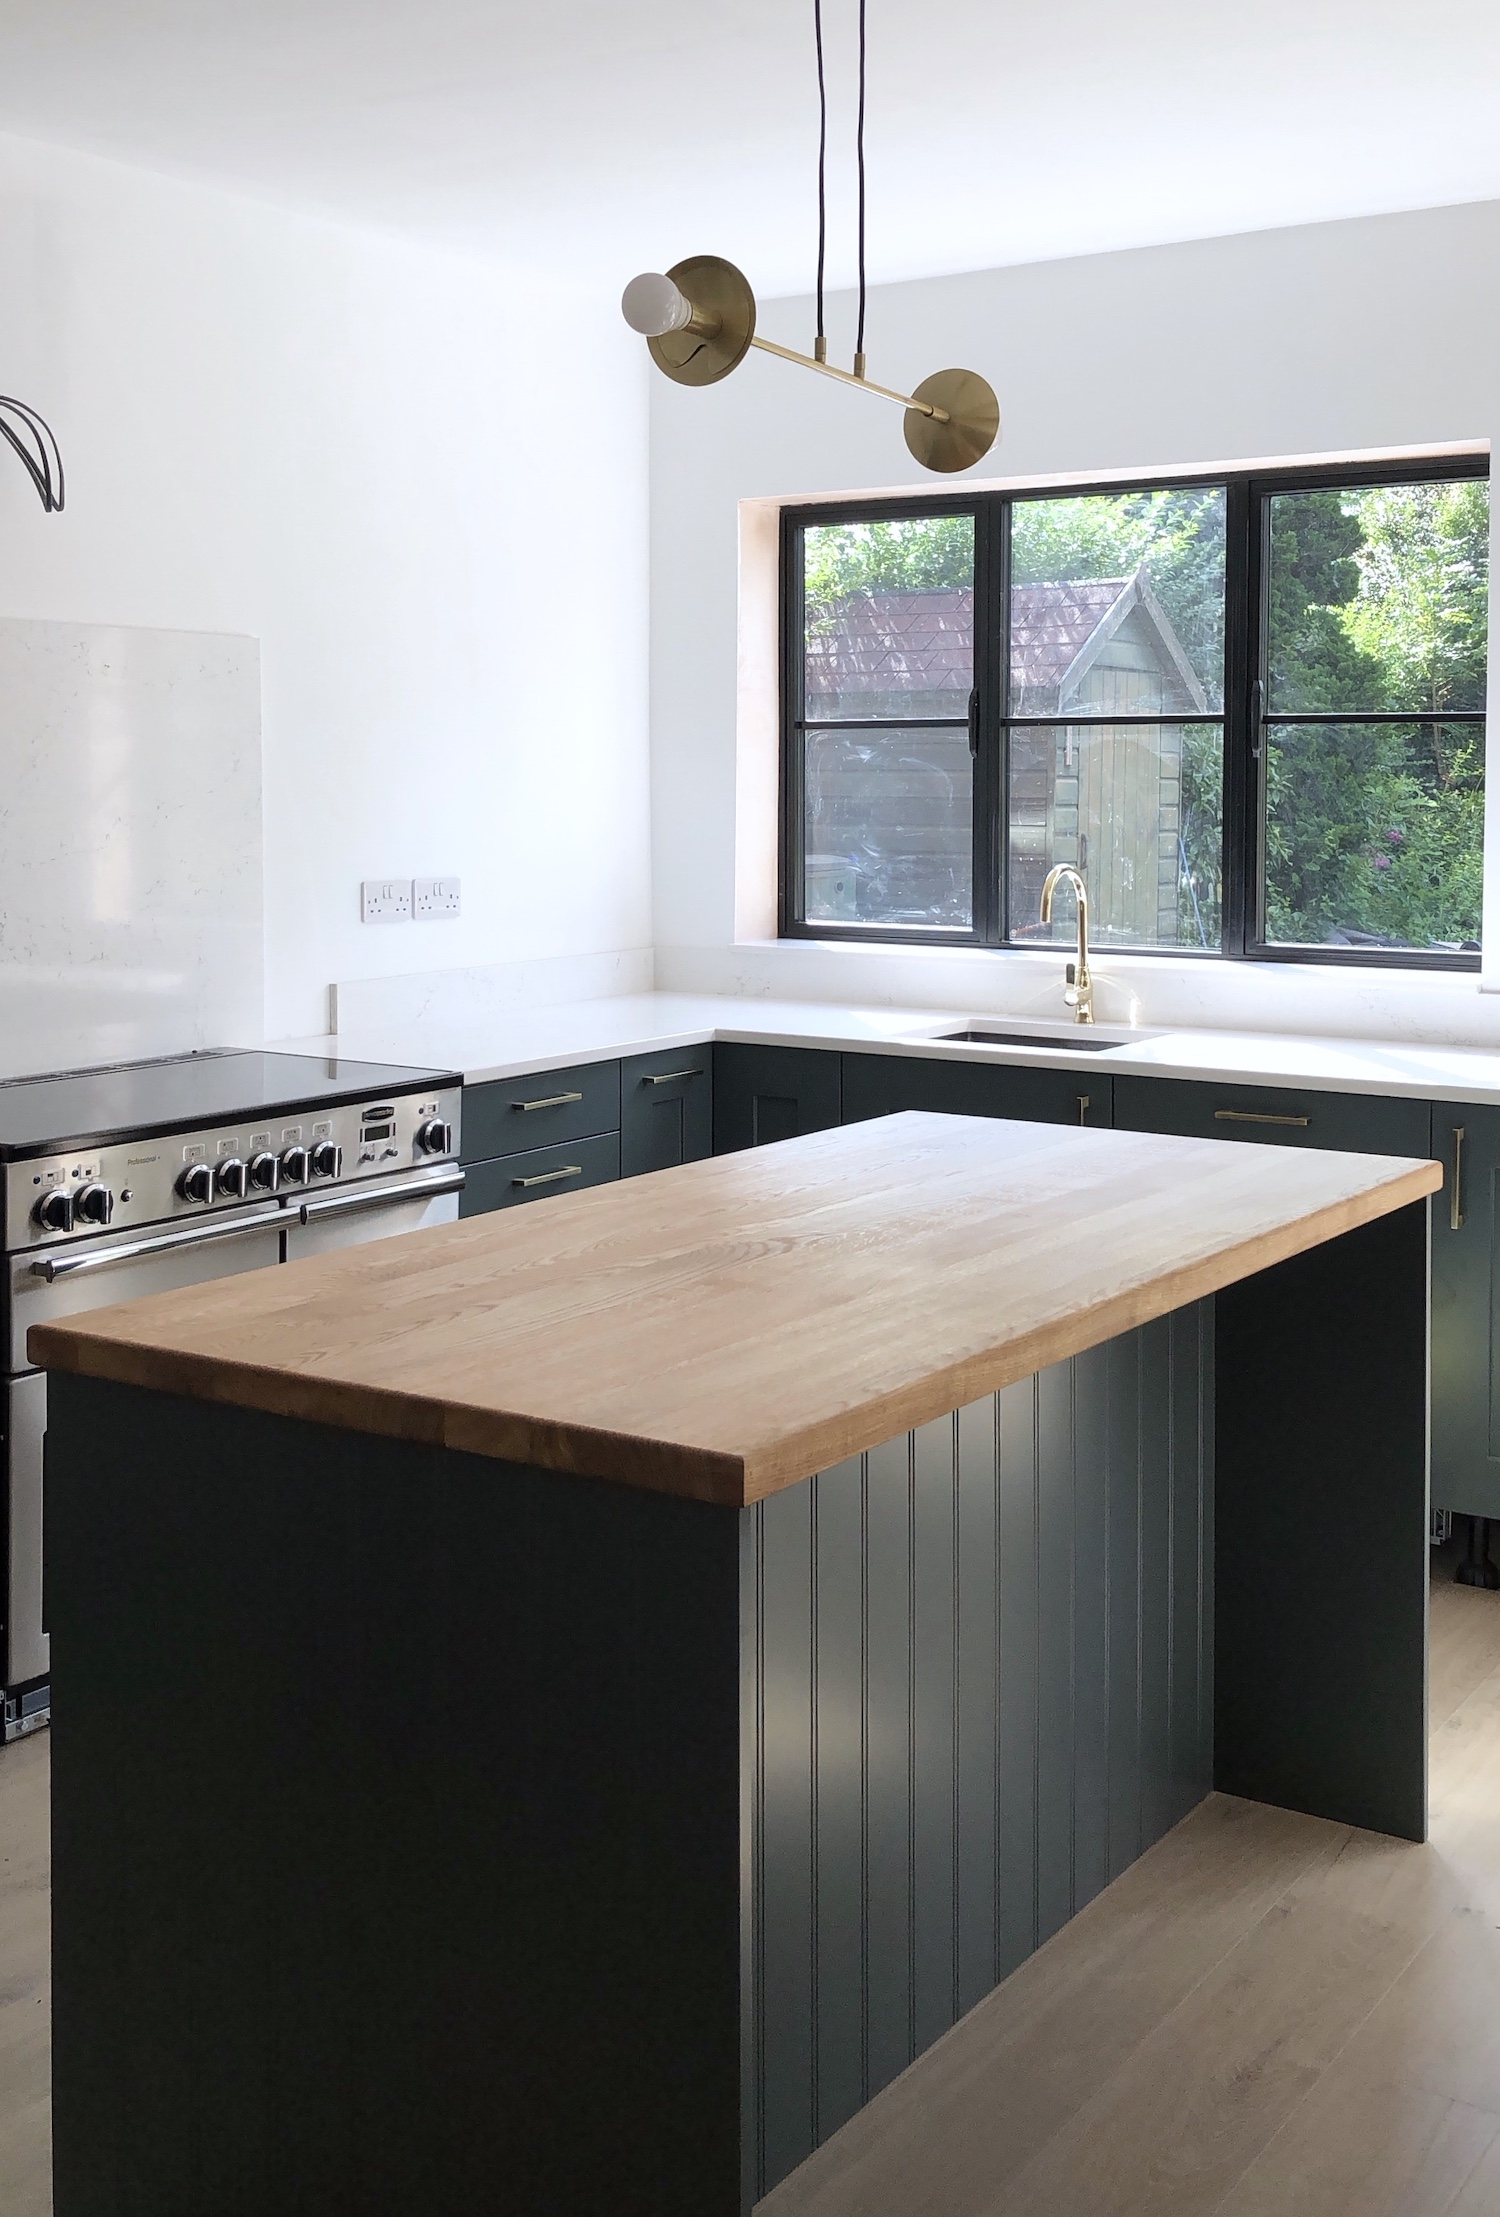 First Sense Interiors - kitchen progress - blue kitchen with quartz and oak worktops